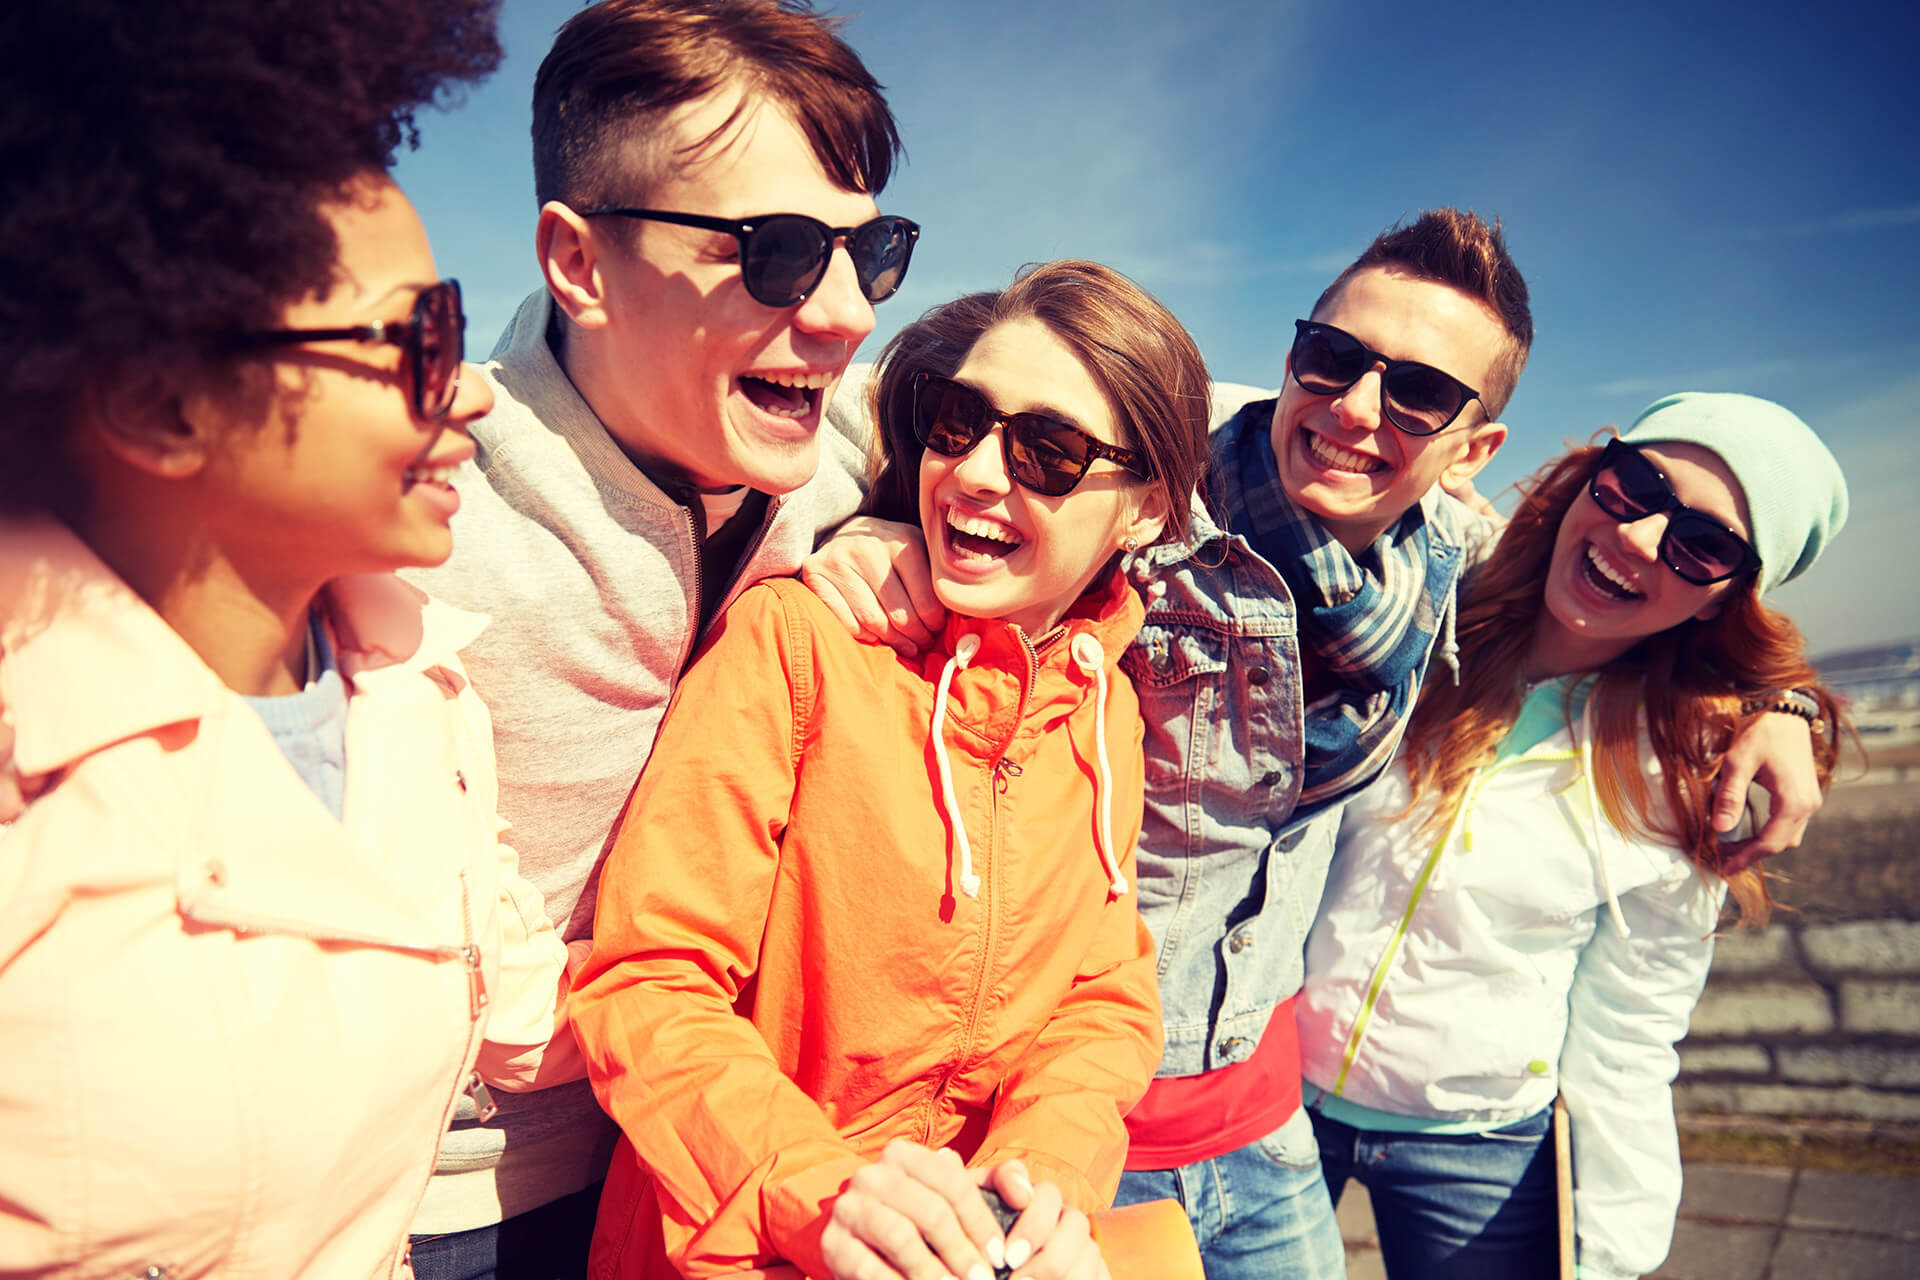 Image of five people with their arms around each other. Everyone is wearing sunglasses and laughing.